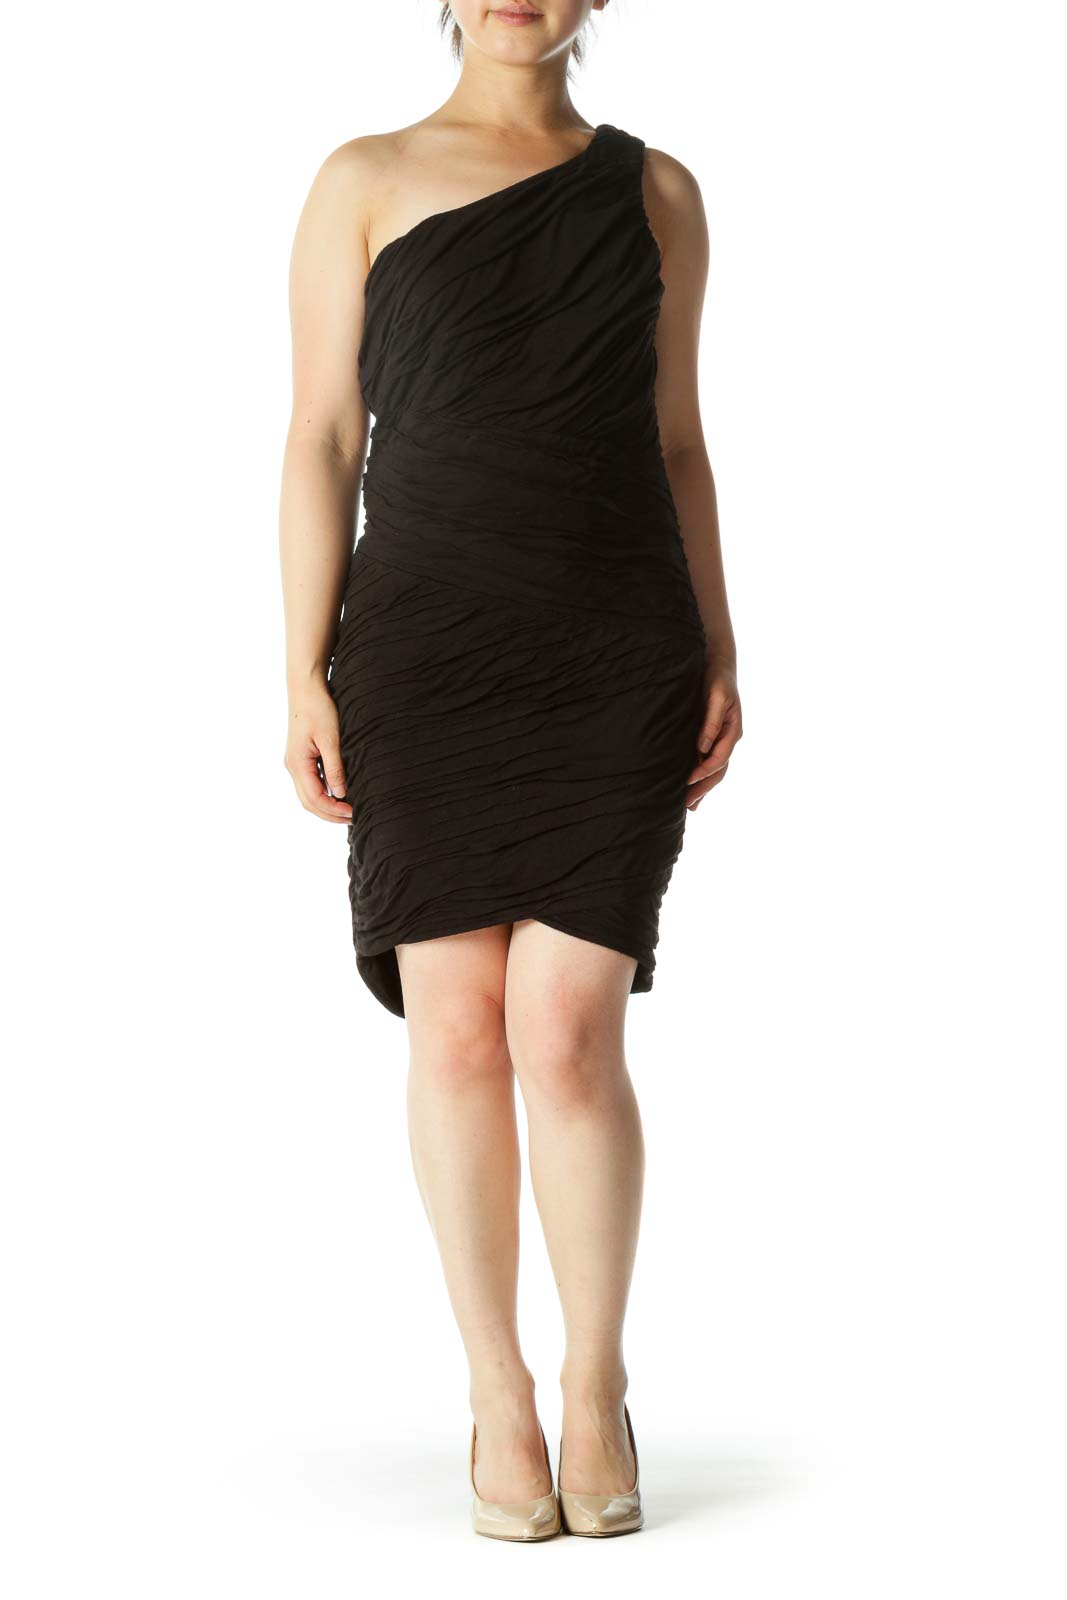 Black One Shoulder Ruched Fitted Dress